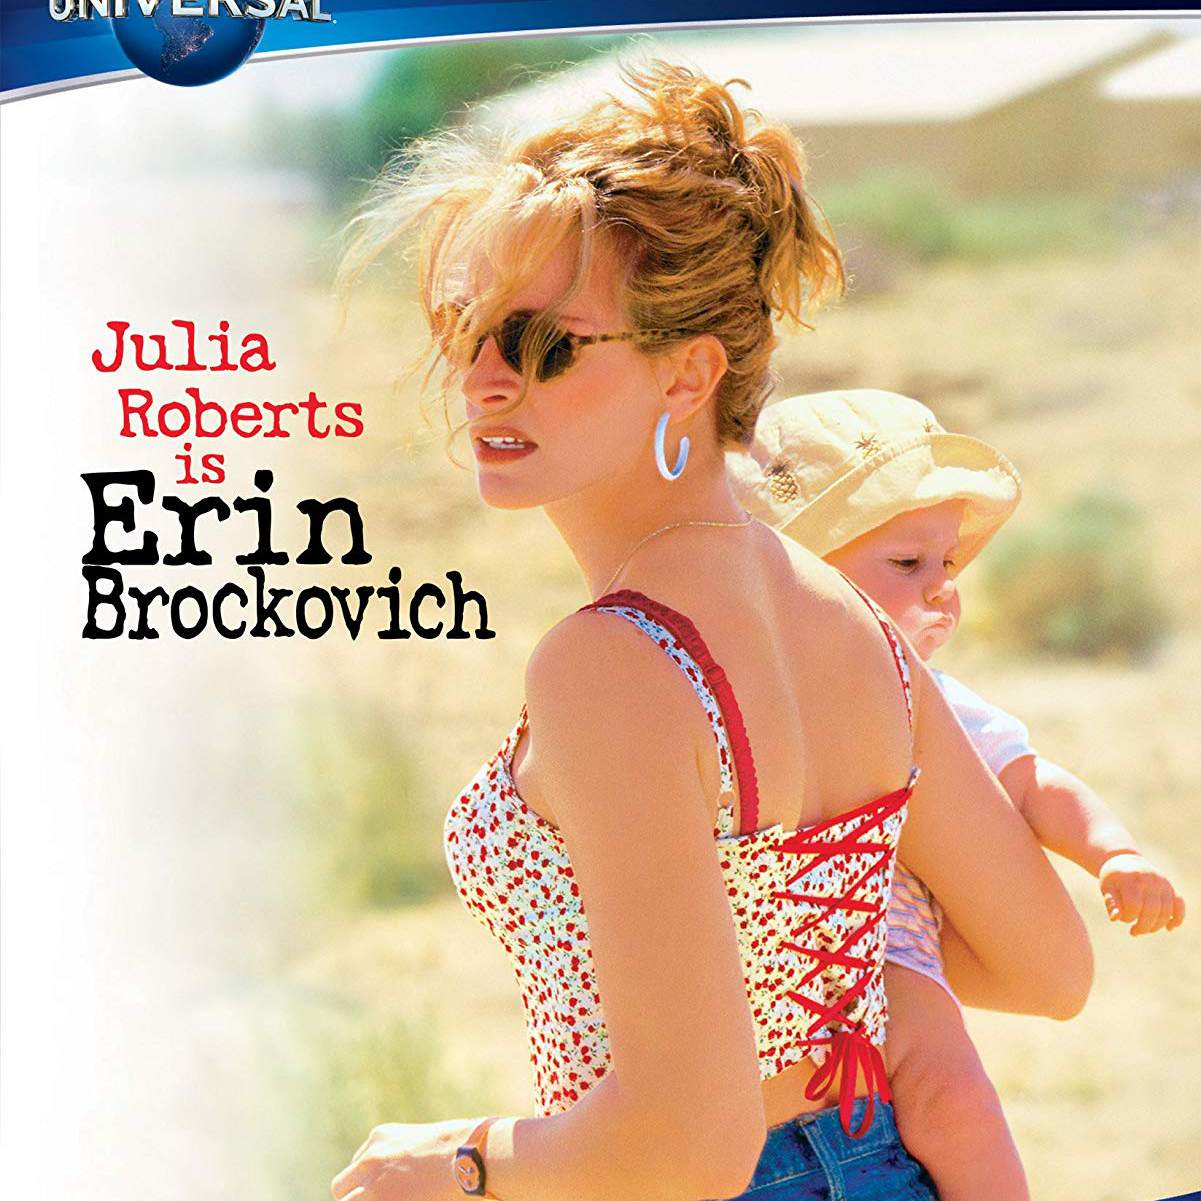 Promotional image for the film Erin Brockovich